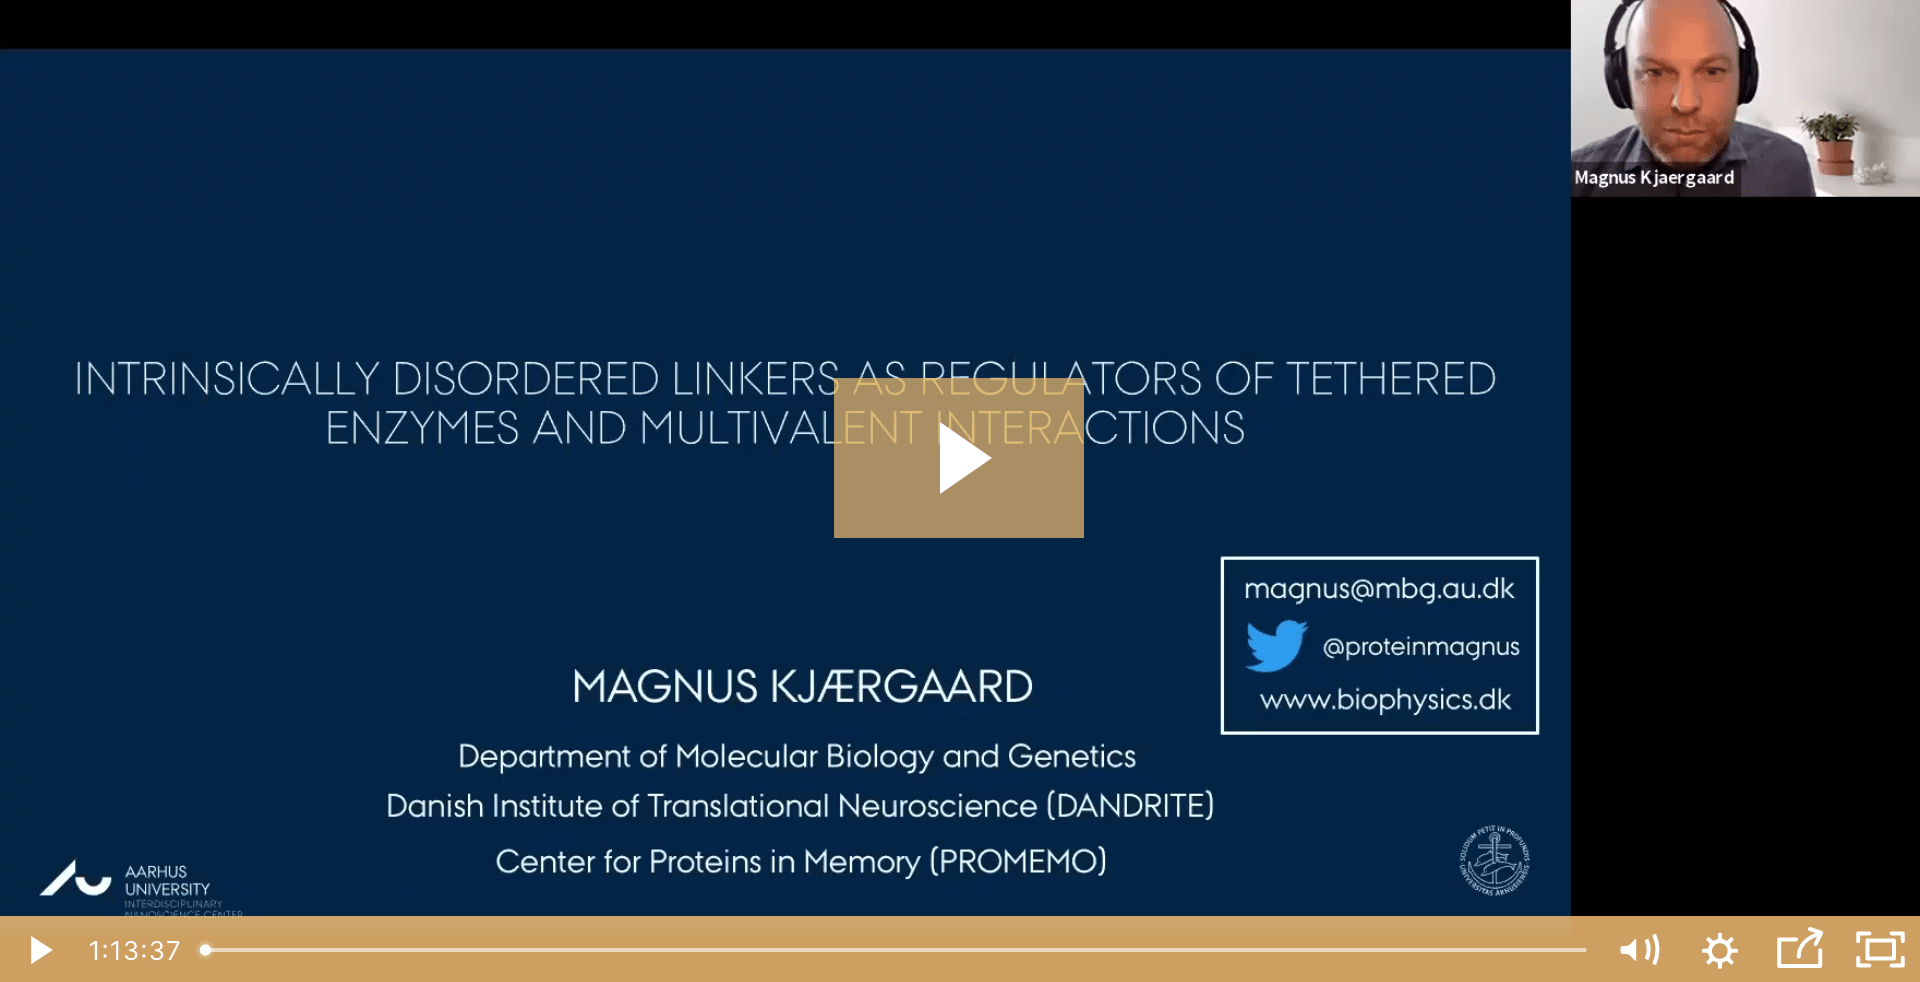 Magnus Kjærgaard on Tethered Enzymes, Multivalent Interactions—and Tigers